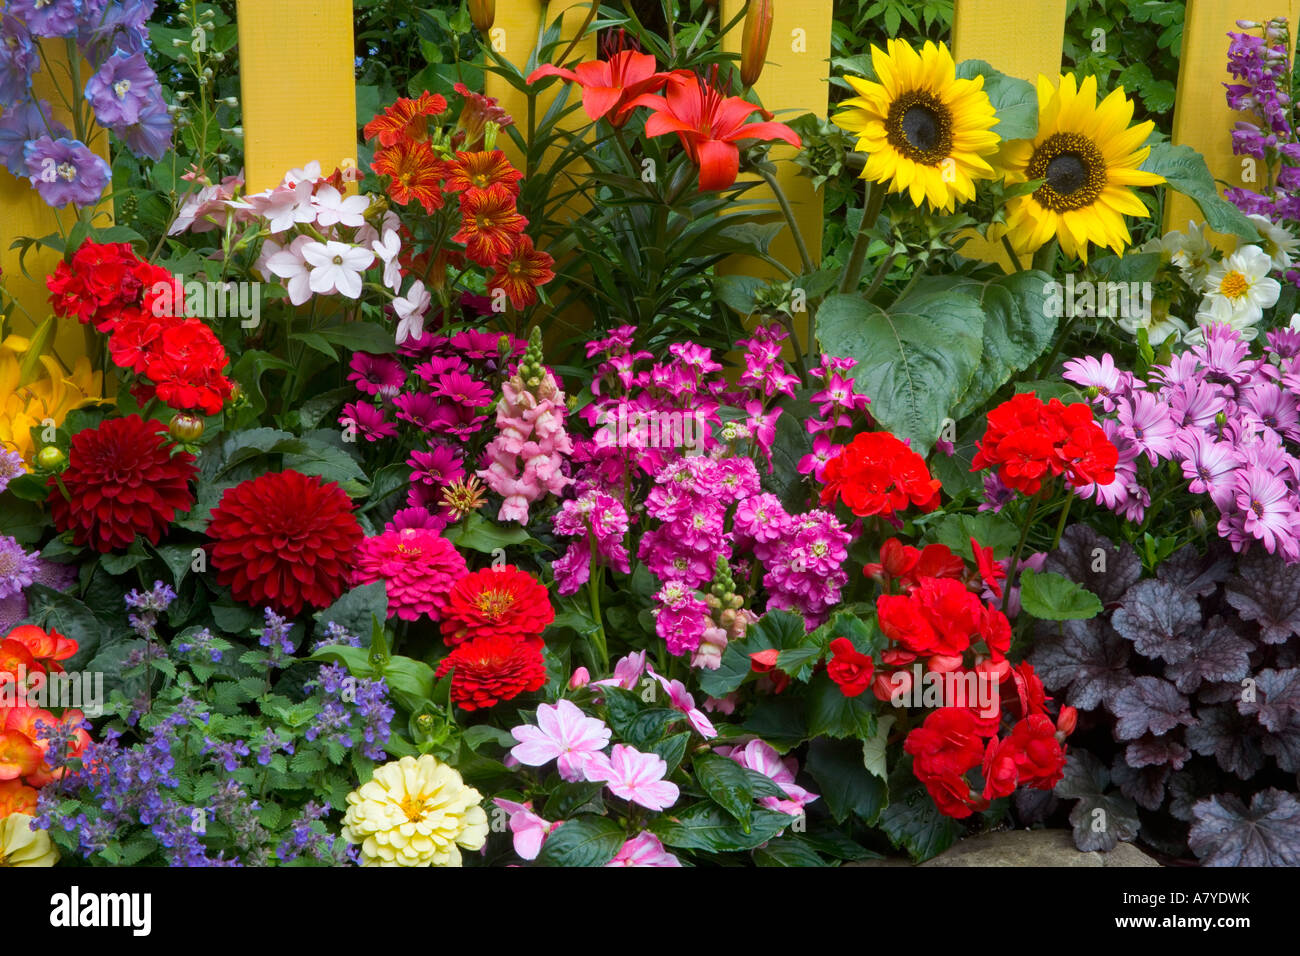 yellow picket fence with flower garden in front. sunflowers, painted